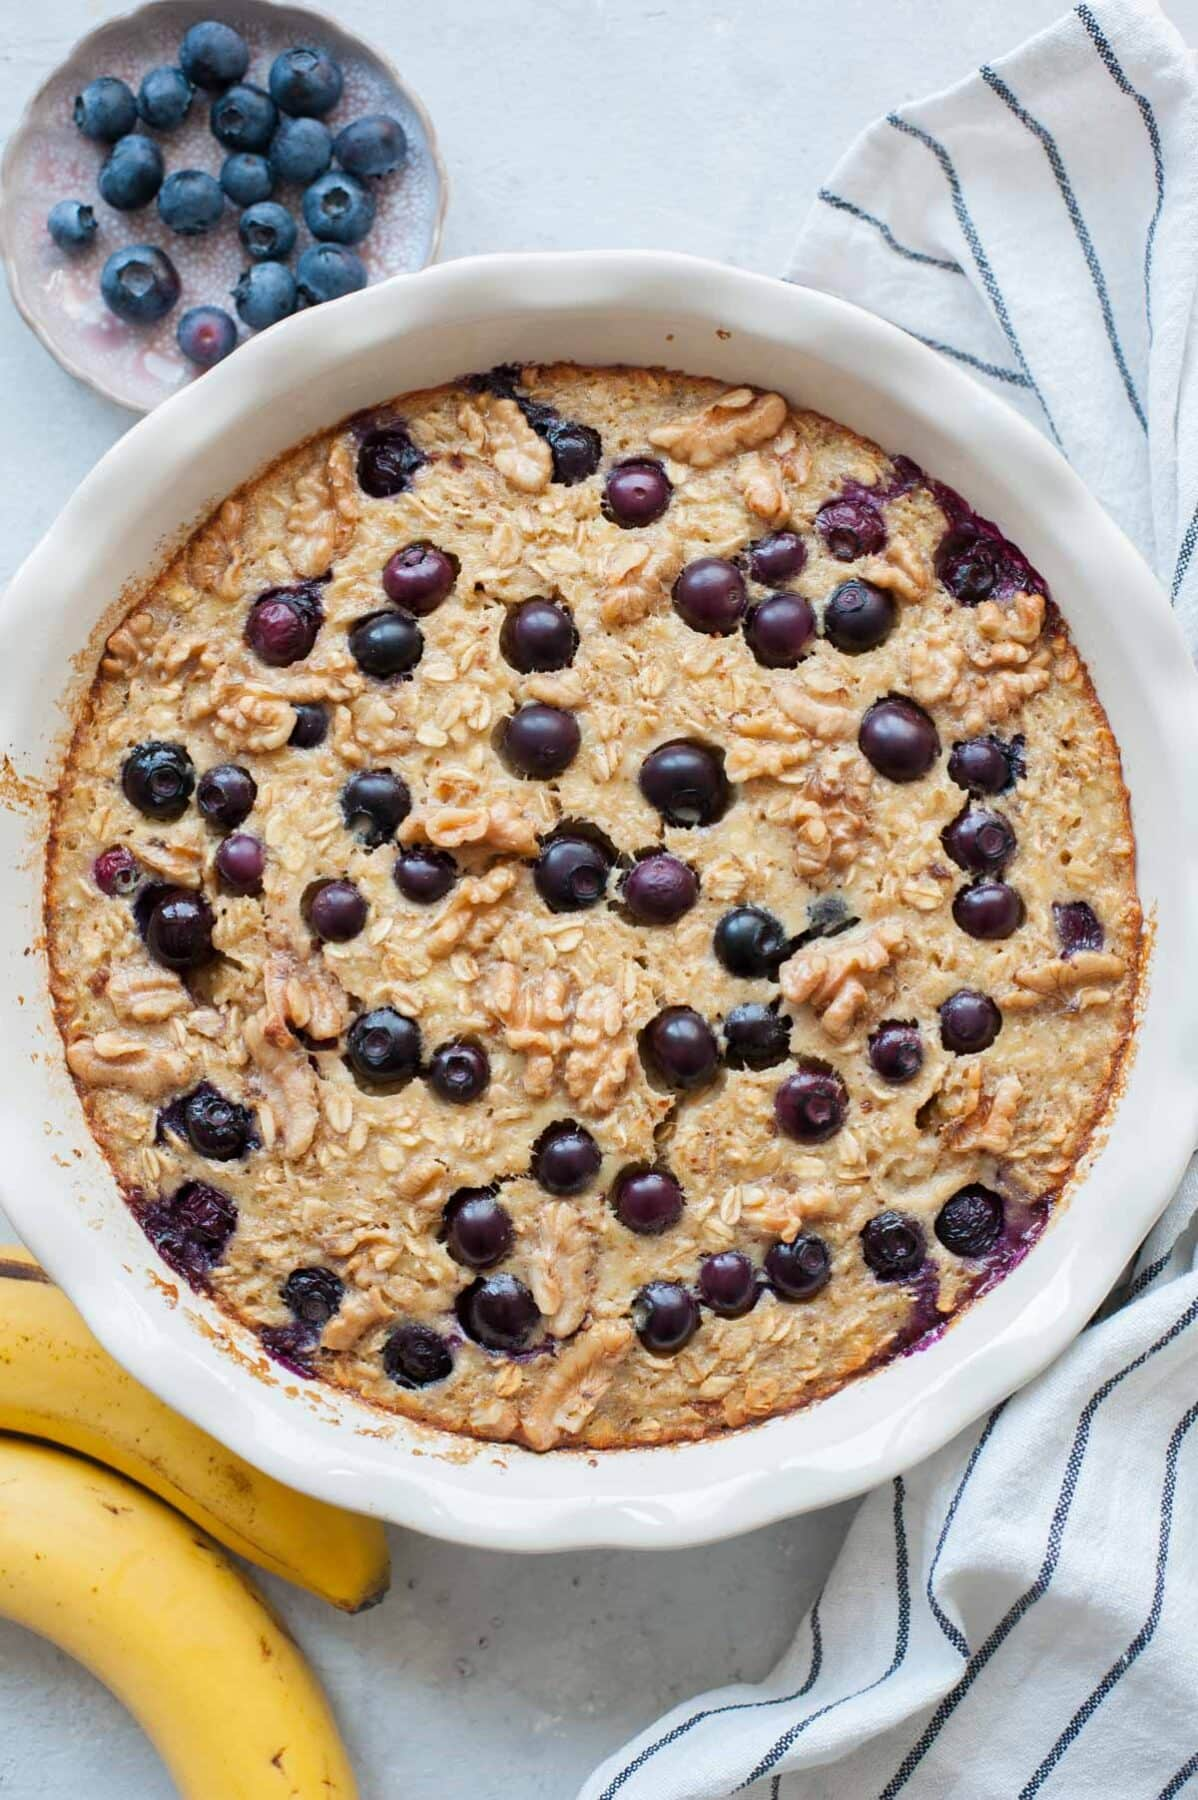 Baked oatmeal on a white table with striped towel near a banana and plate of blueberries